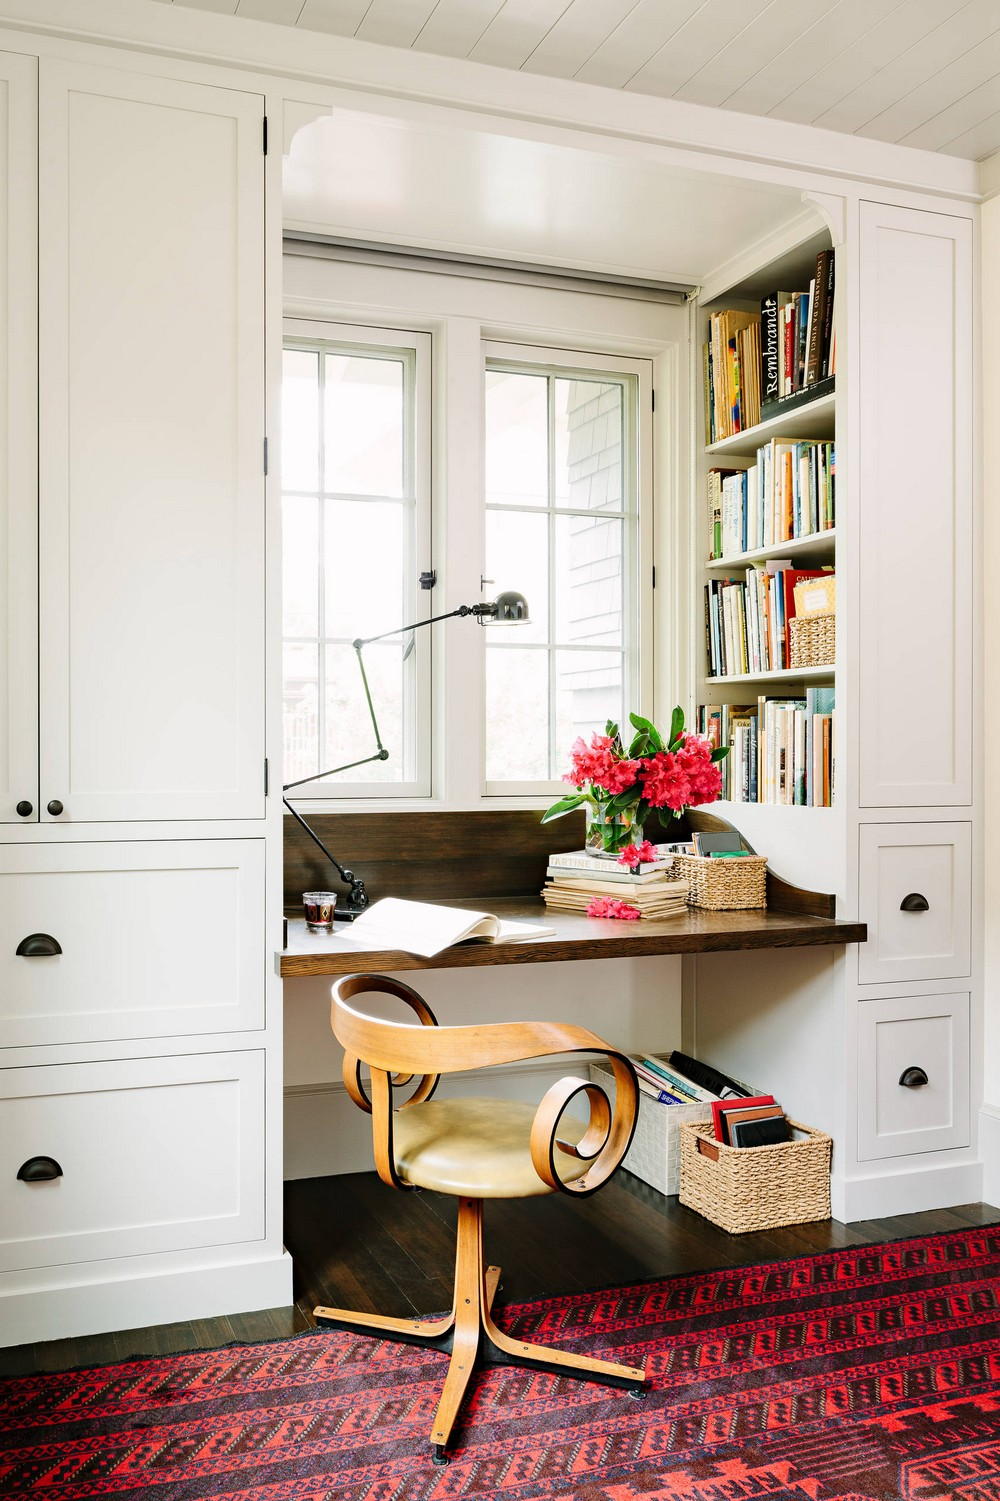 18 Awe-Inspiring Home Office Designs full of Colors and Textures 7